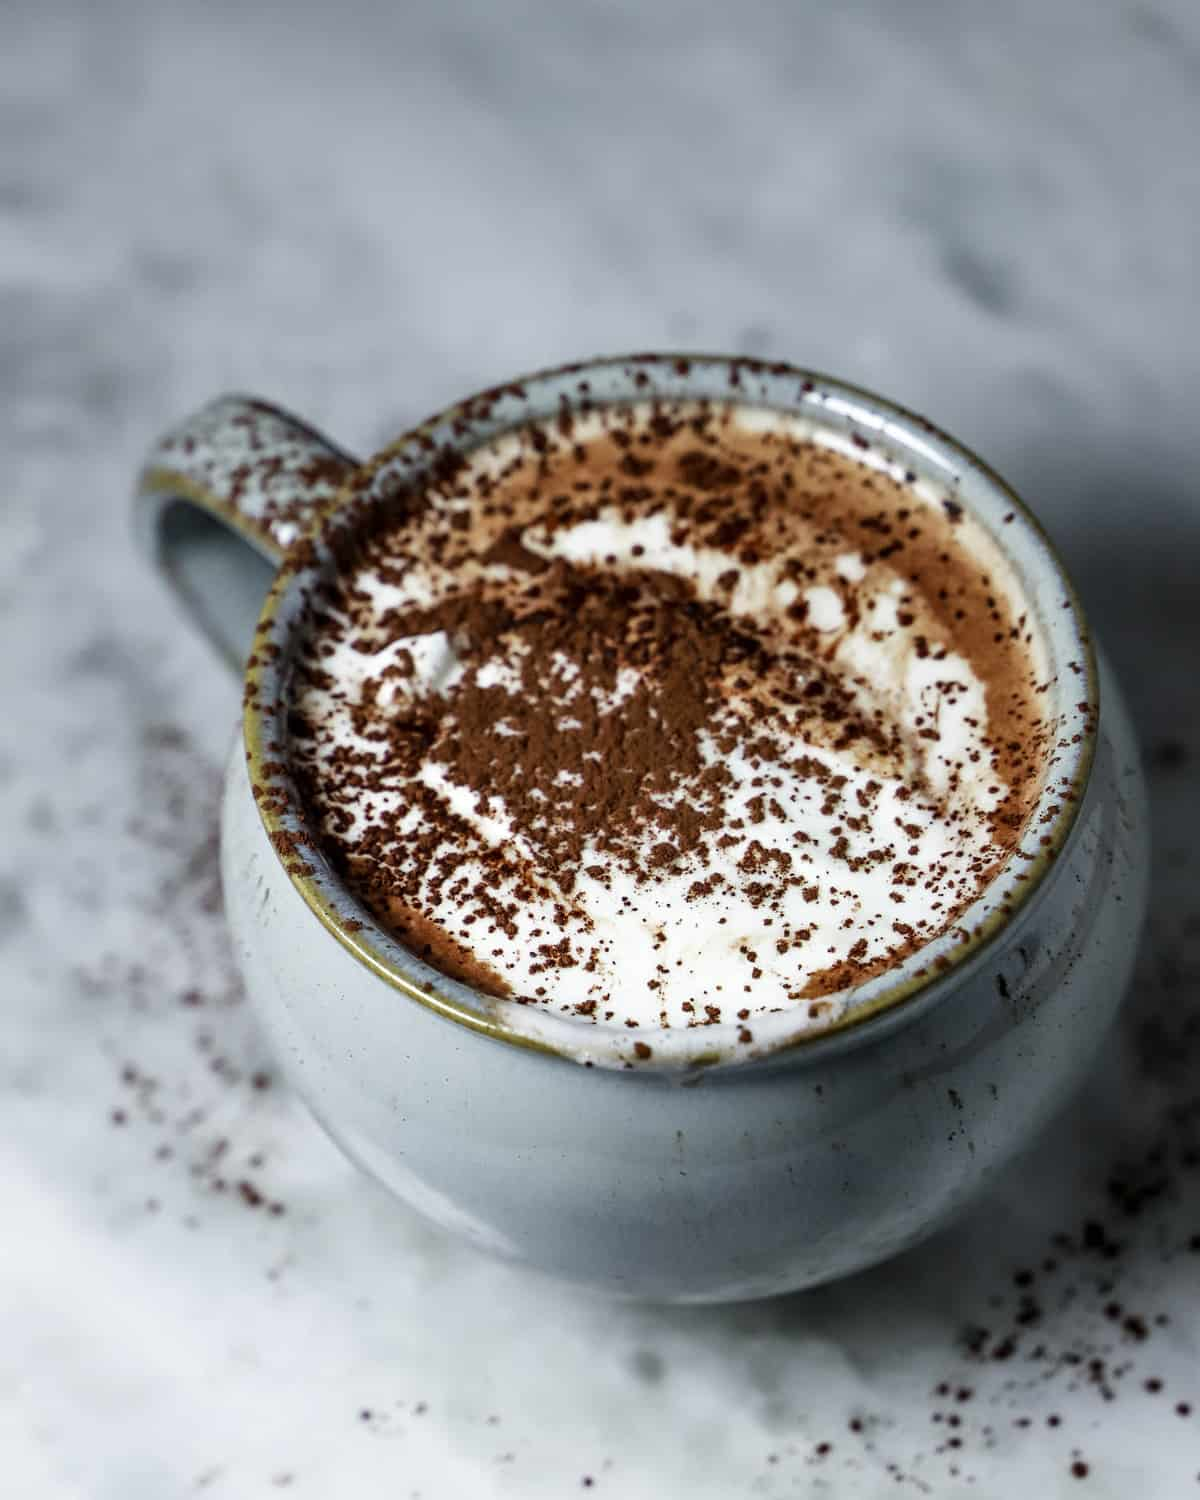 Hot chocolate in a mug with whipped cream and dust of cocoa powder on top